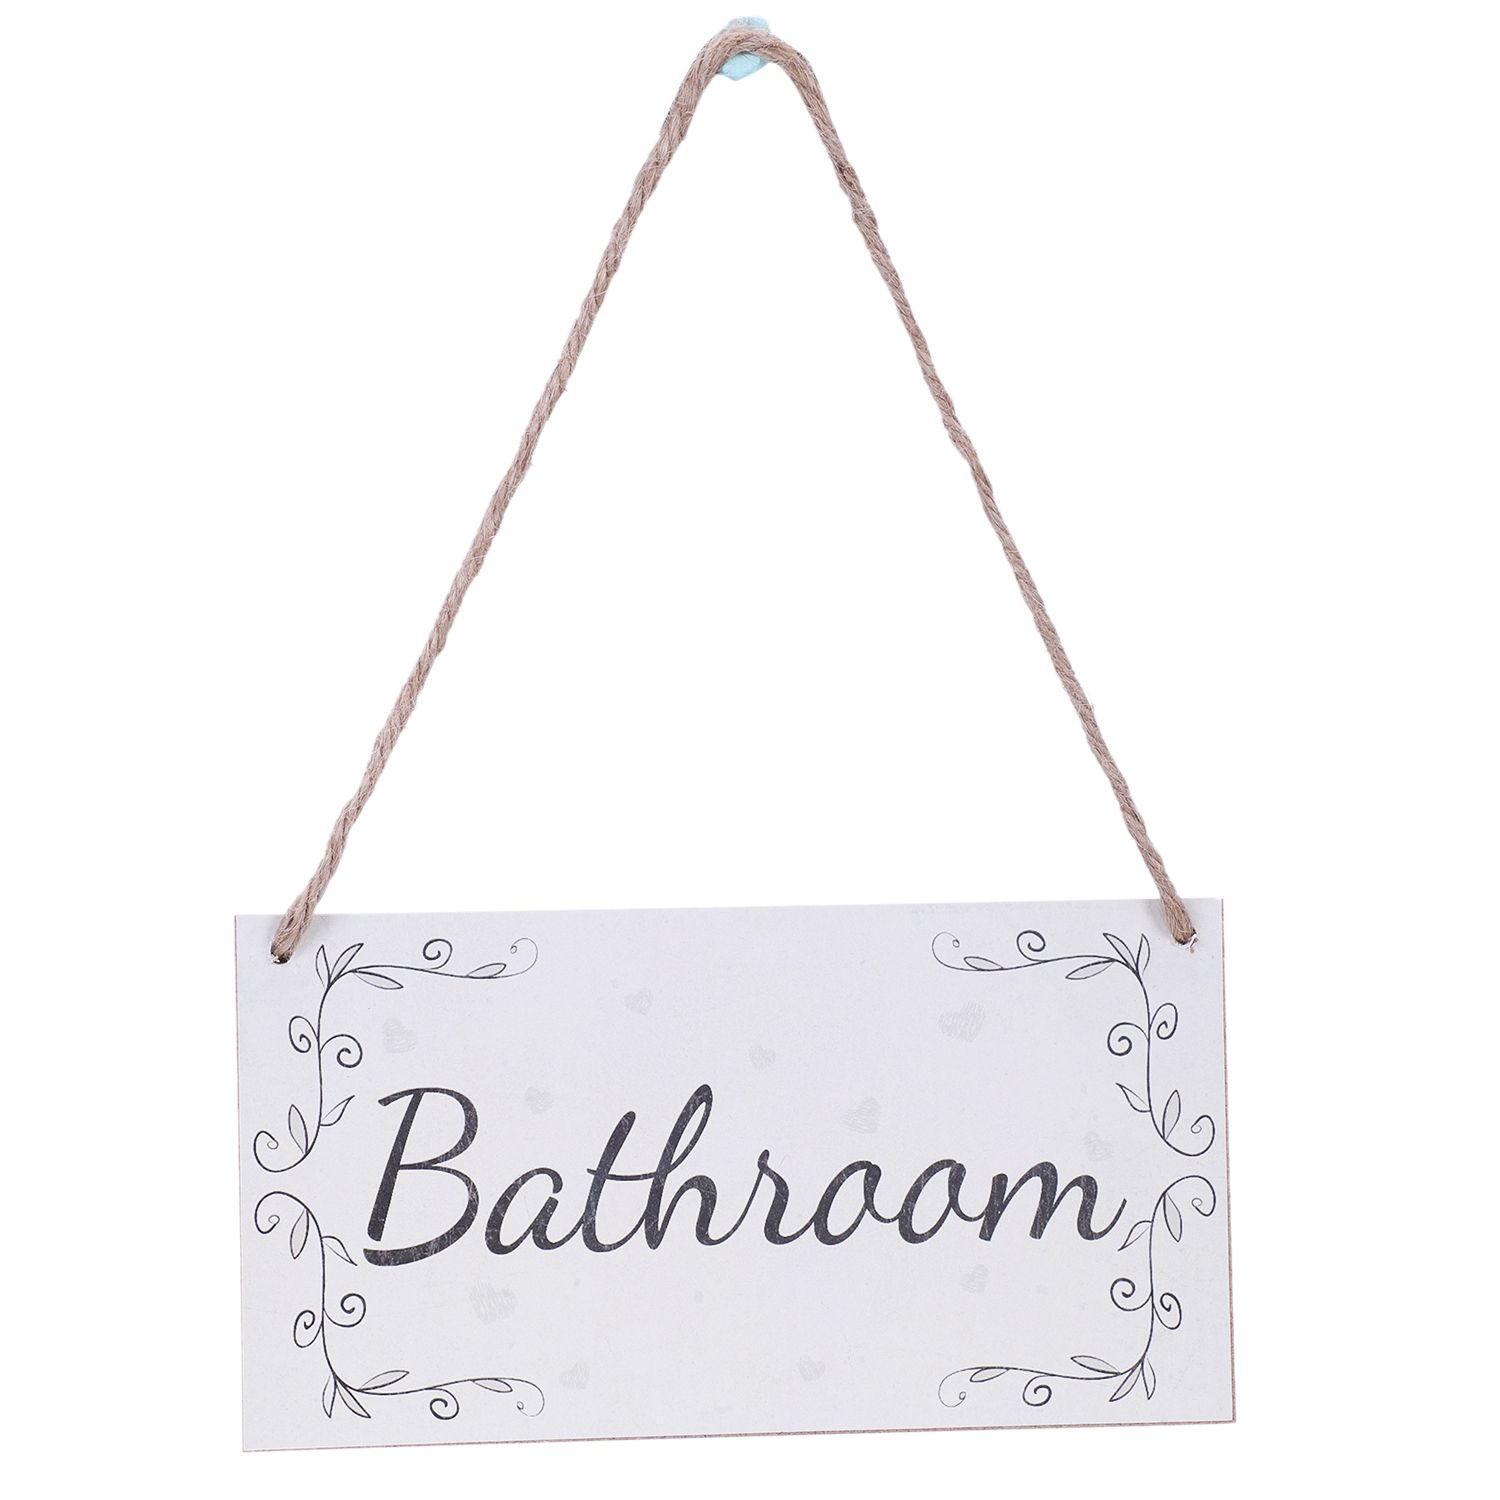 Bathroom Handmade French Shabby Chic Style Wooden Home Decor Door Sign Plaque image